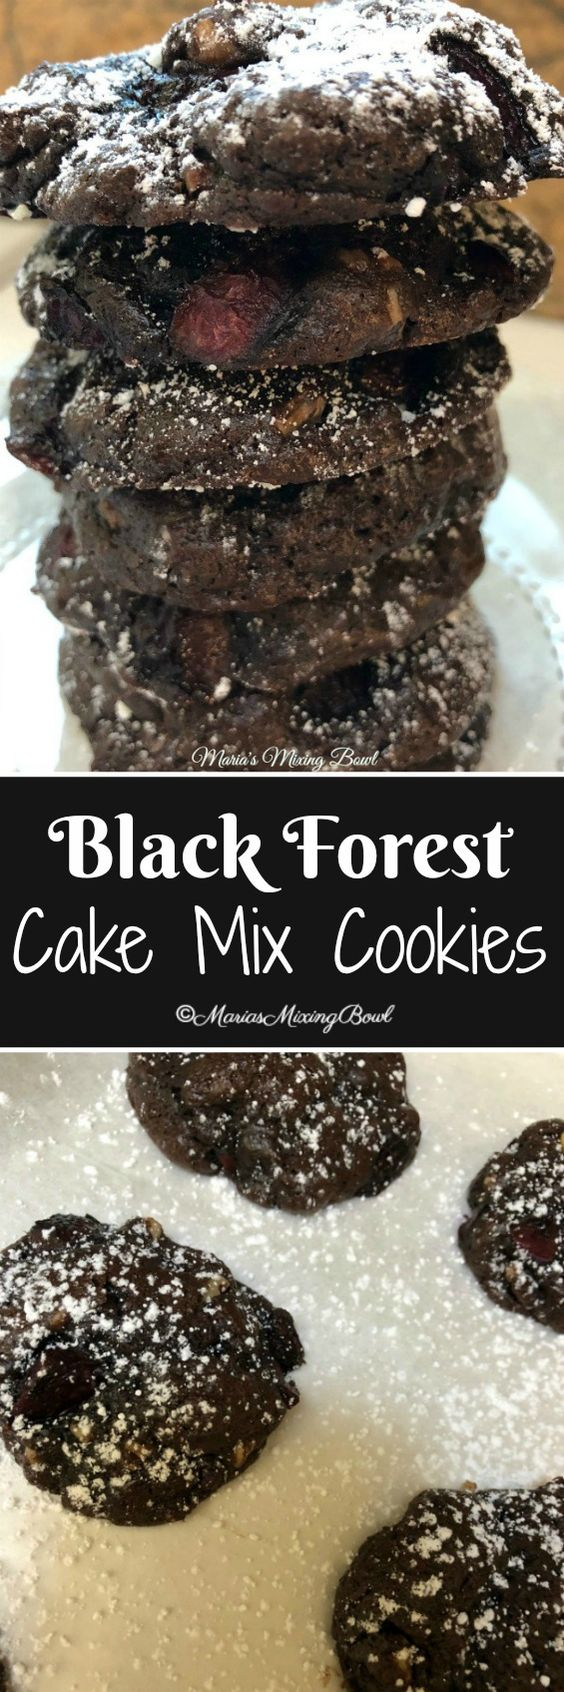 Black Forest Cake Mix Cookie Recipe starts out with a chocolate fudge cake mix and summer fresh choppedcherries.